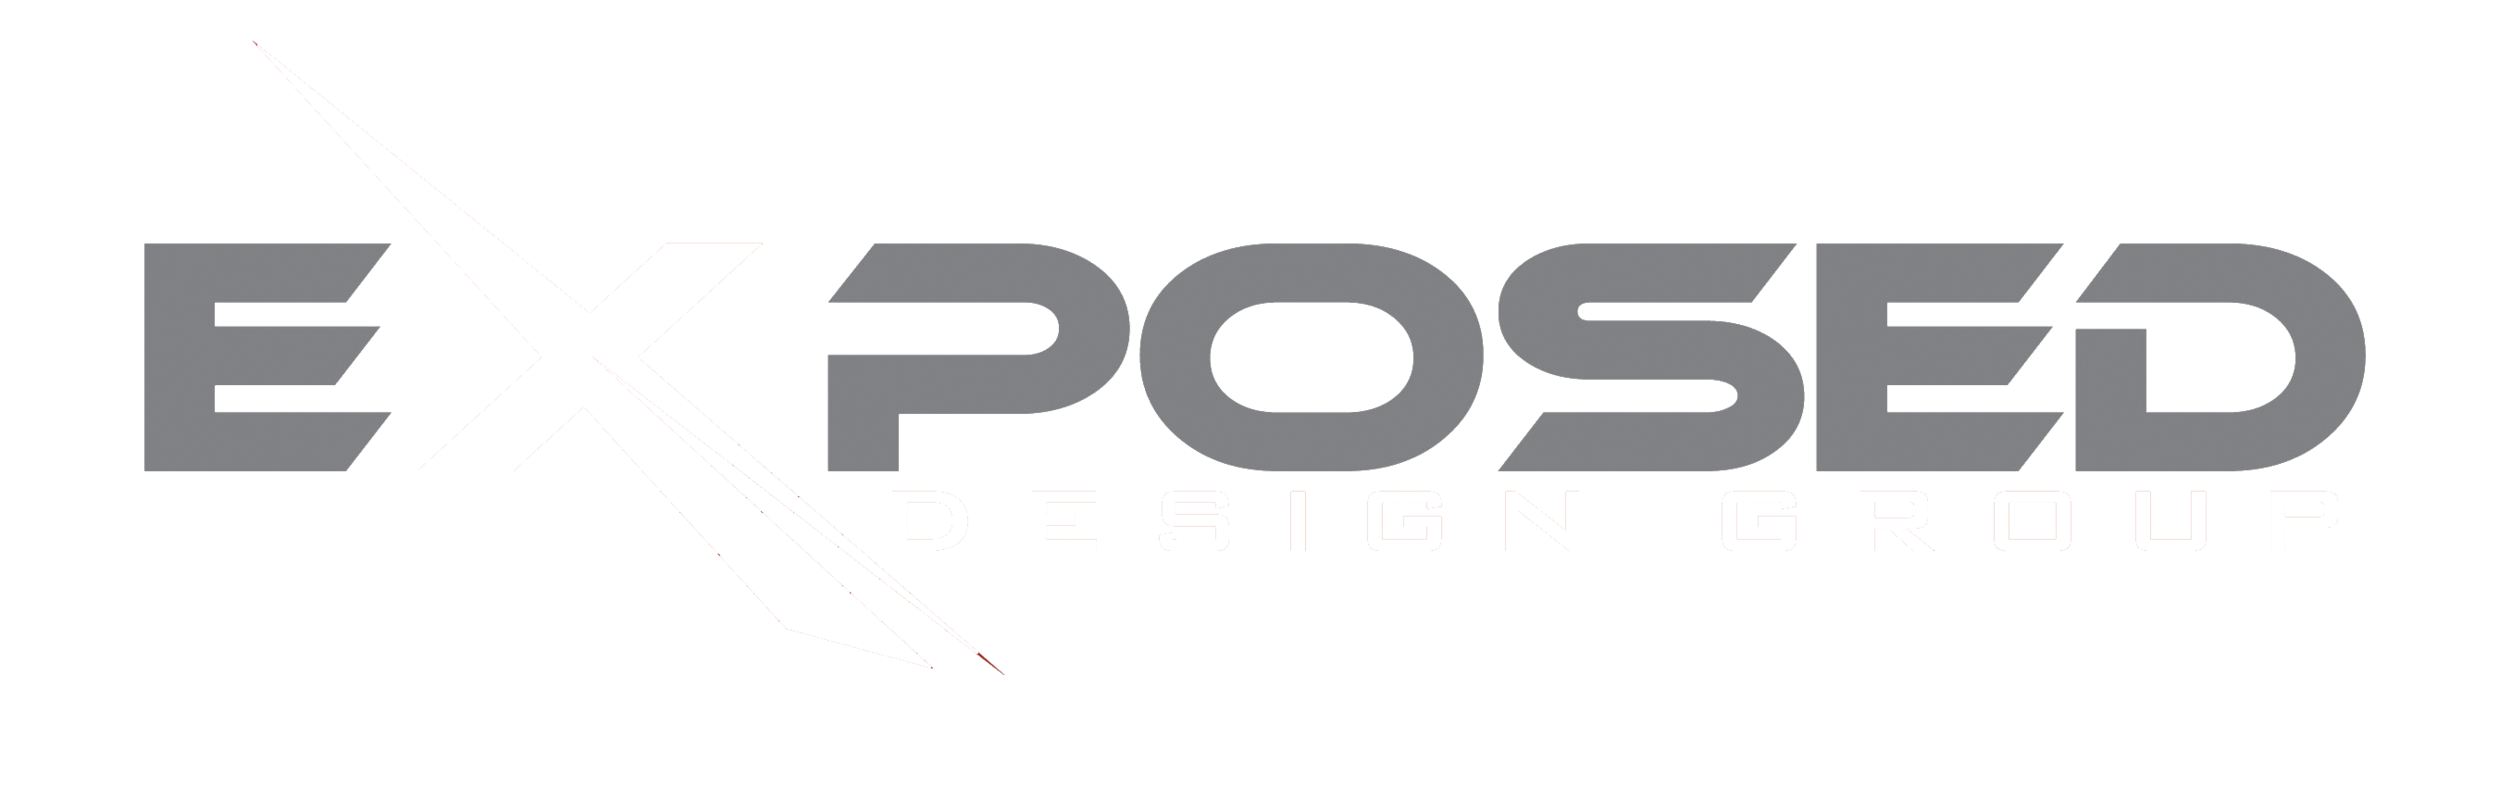 Exposed Design Group white.png